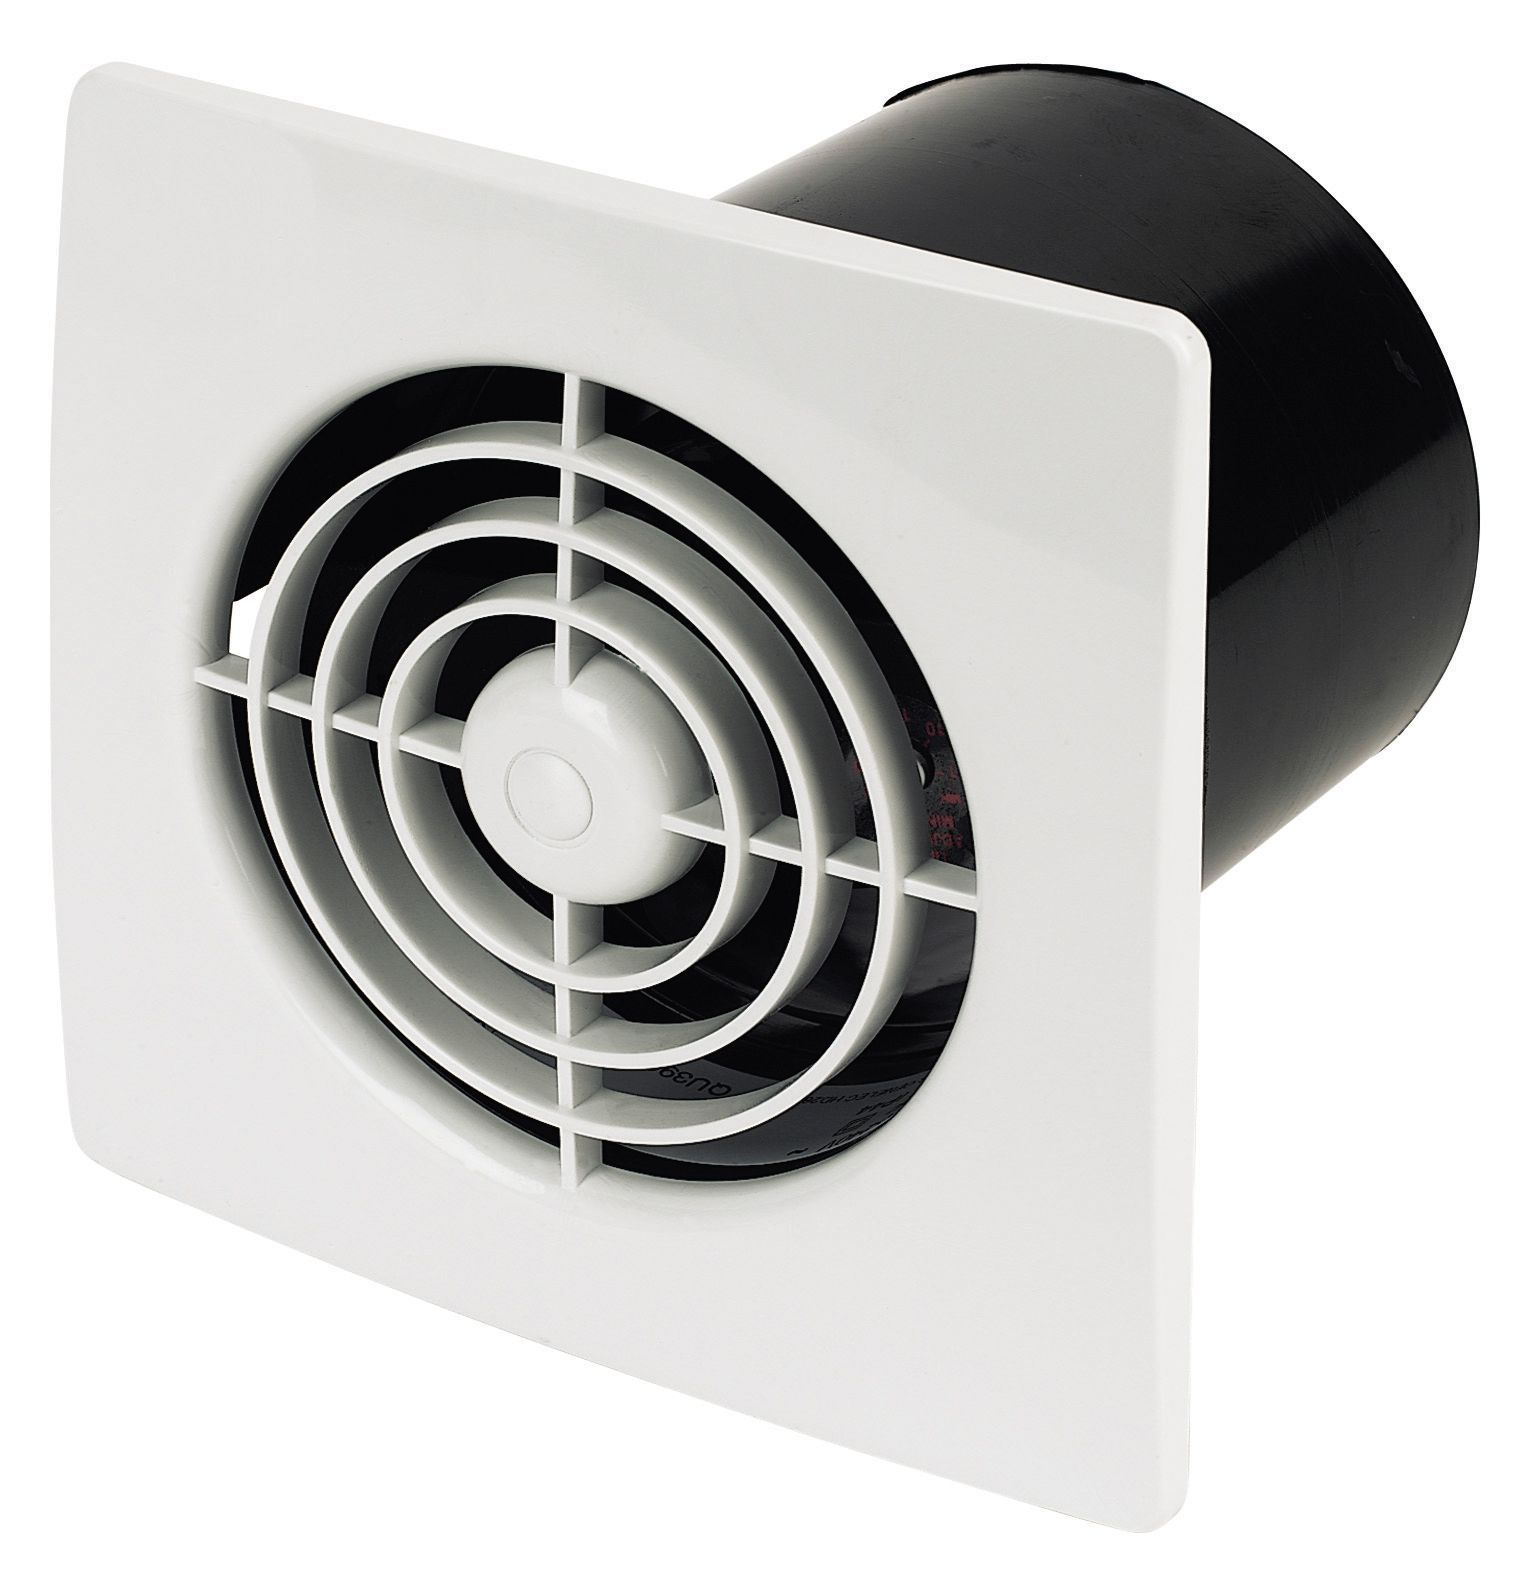 Bathroom extractor fans advice - Manrose 49520 In Line Bathroom Extractor Fan D 100mm Departments Diy At B Q